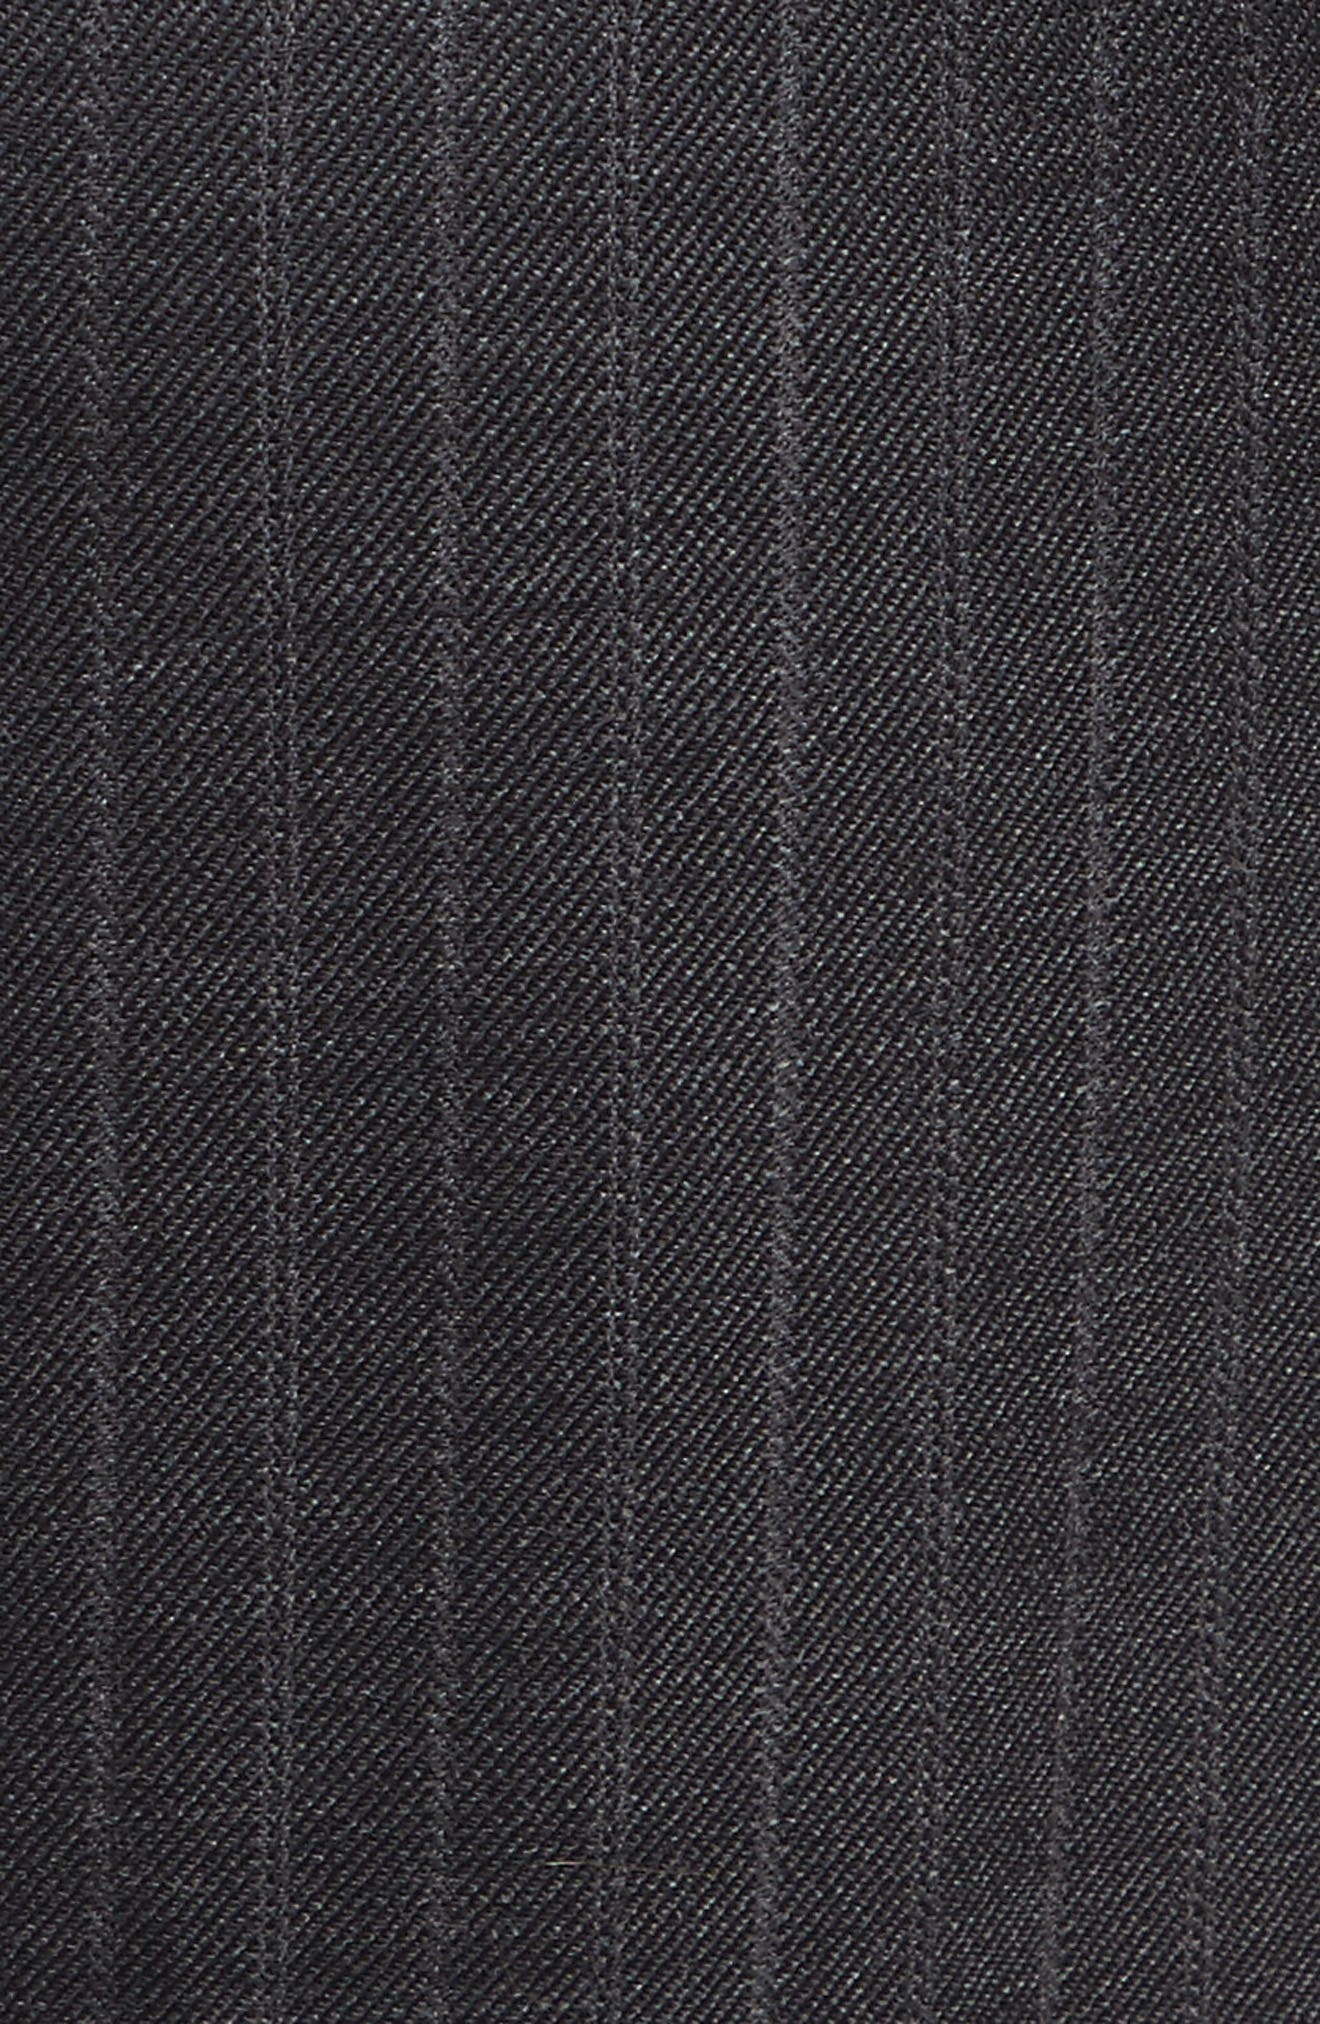 Sia Pinstripe Italian Stretch Wool Trousers,                             Alternate thumbnail 5, color,                             020